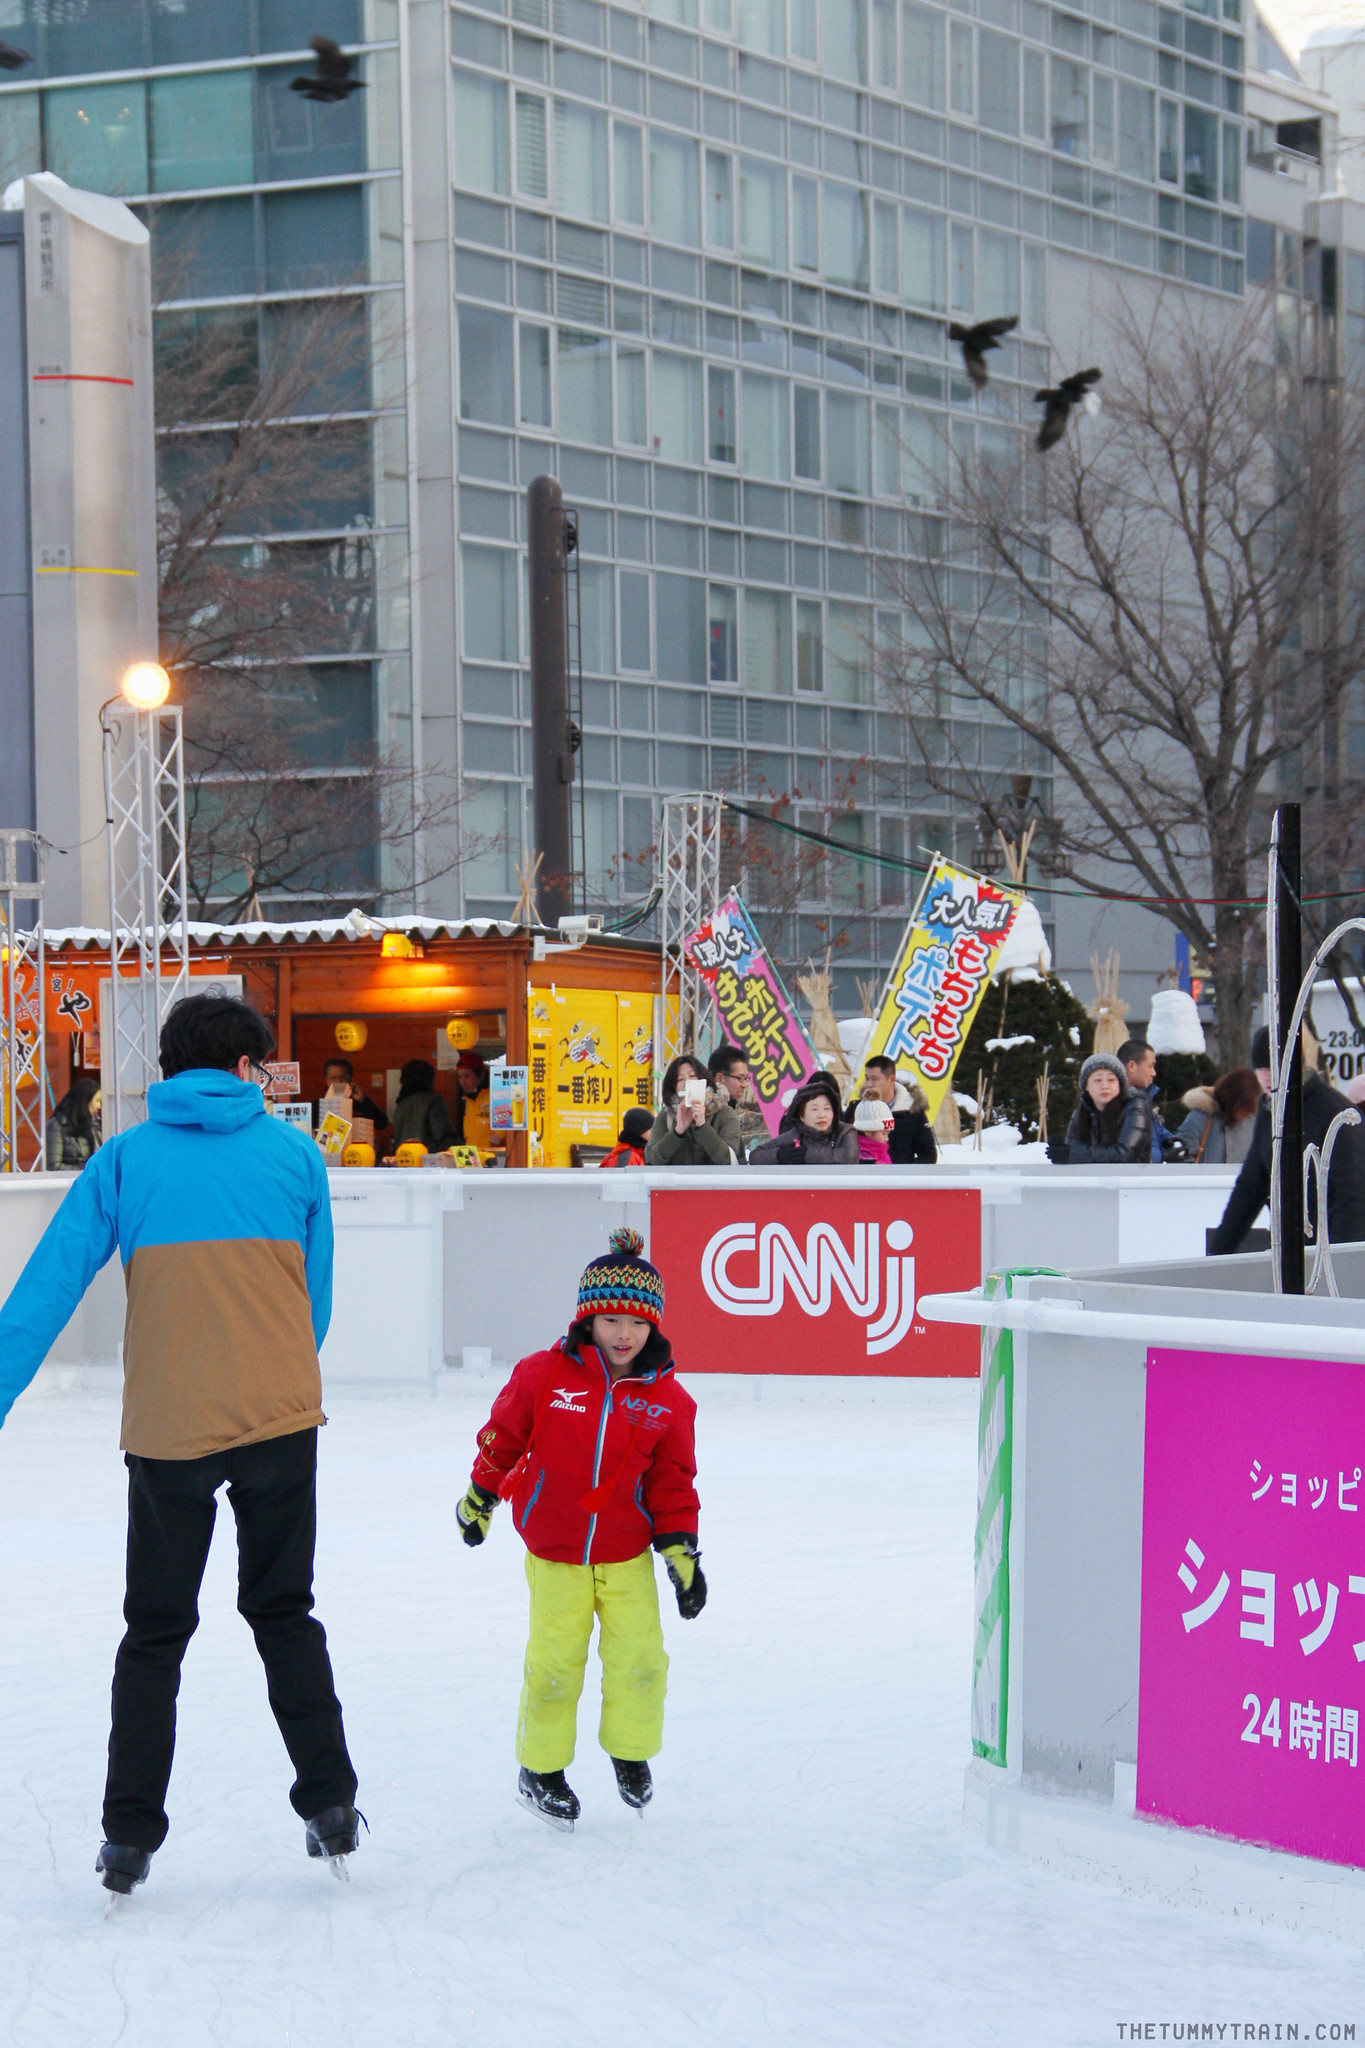 32166765454 463aa2b9df k - Sights, Sounds, and Smells at the 68th Sapporo Snow Festival at Odori Park